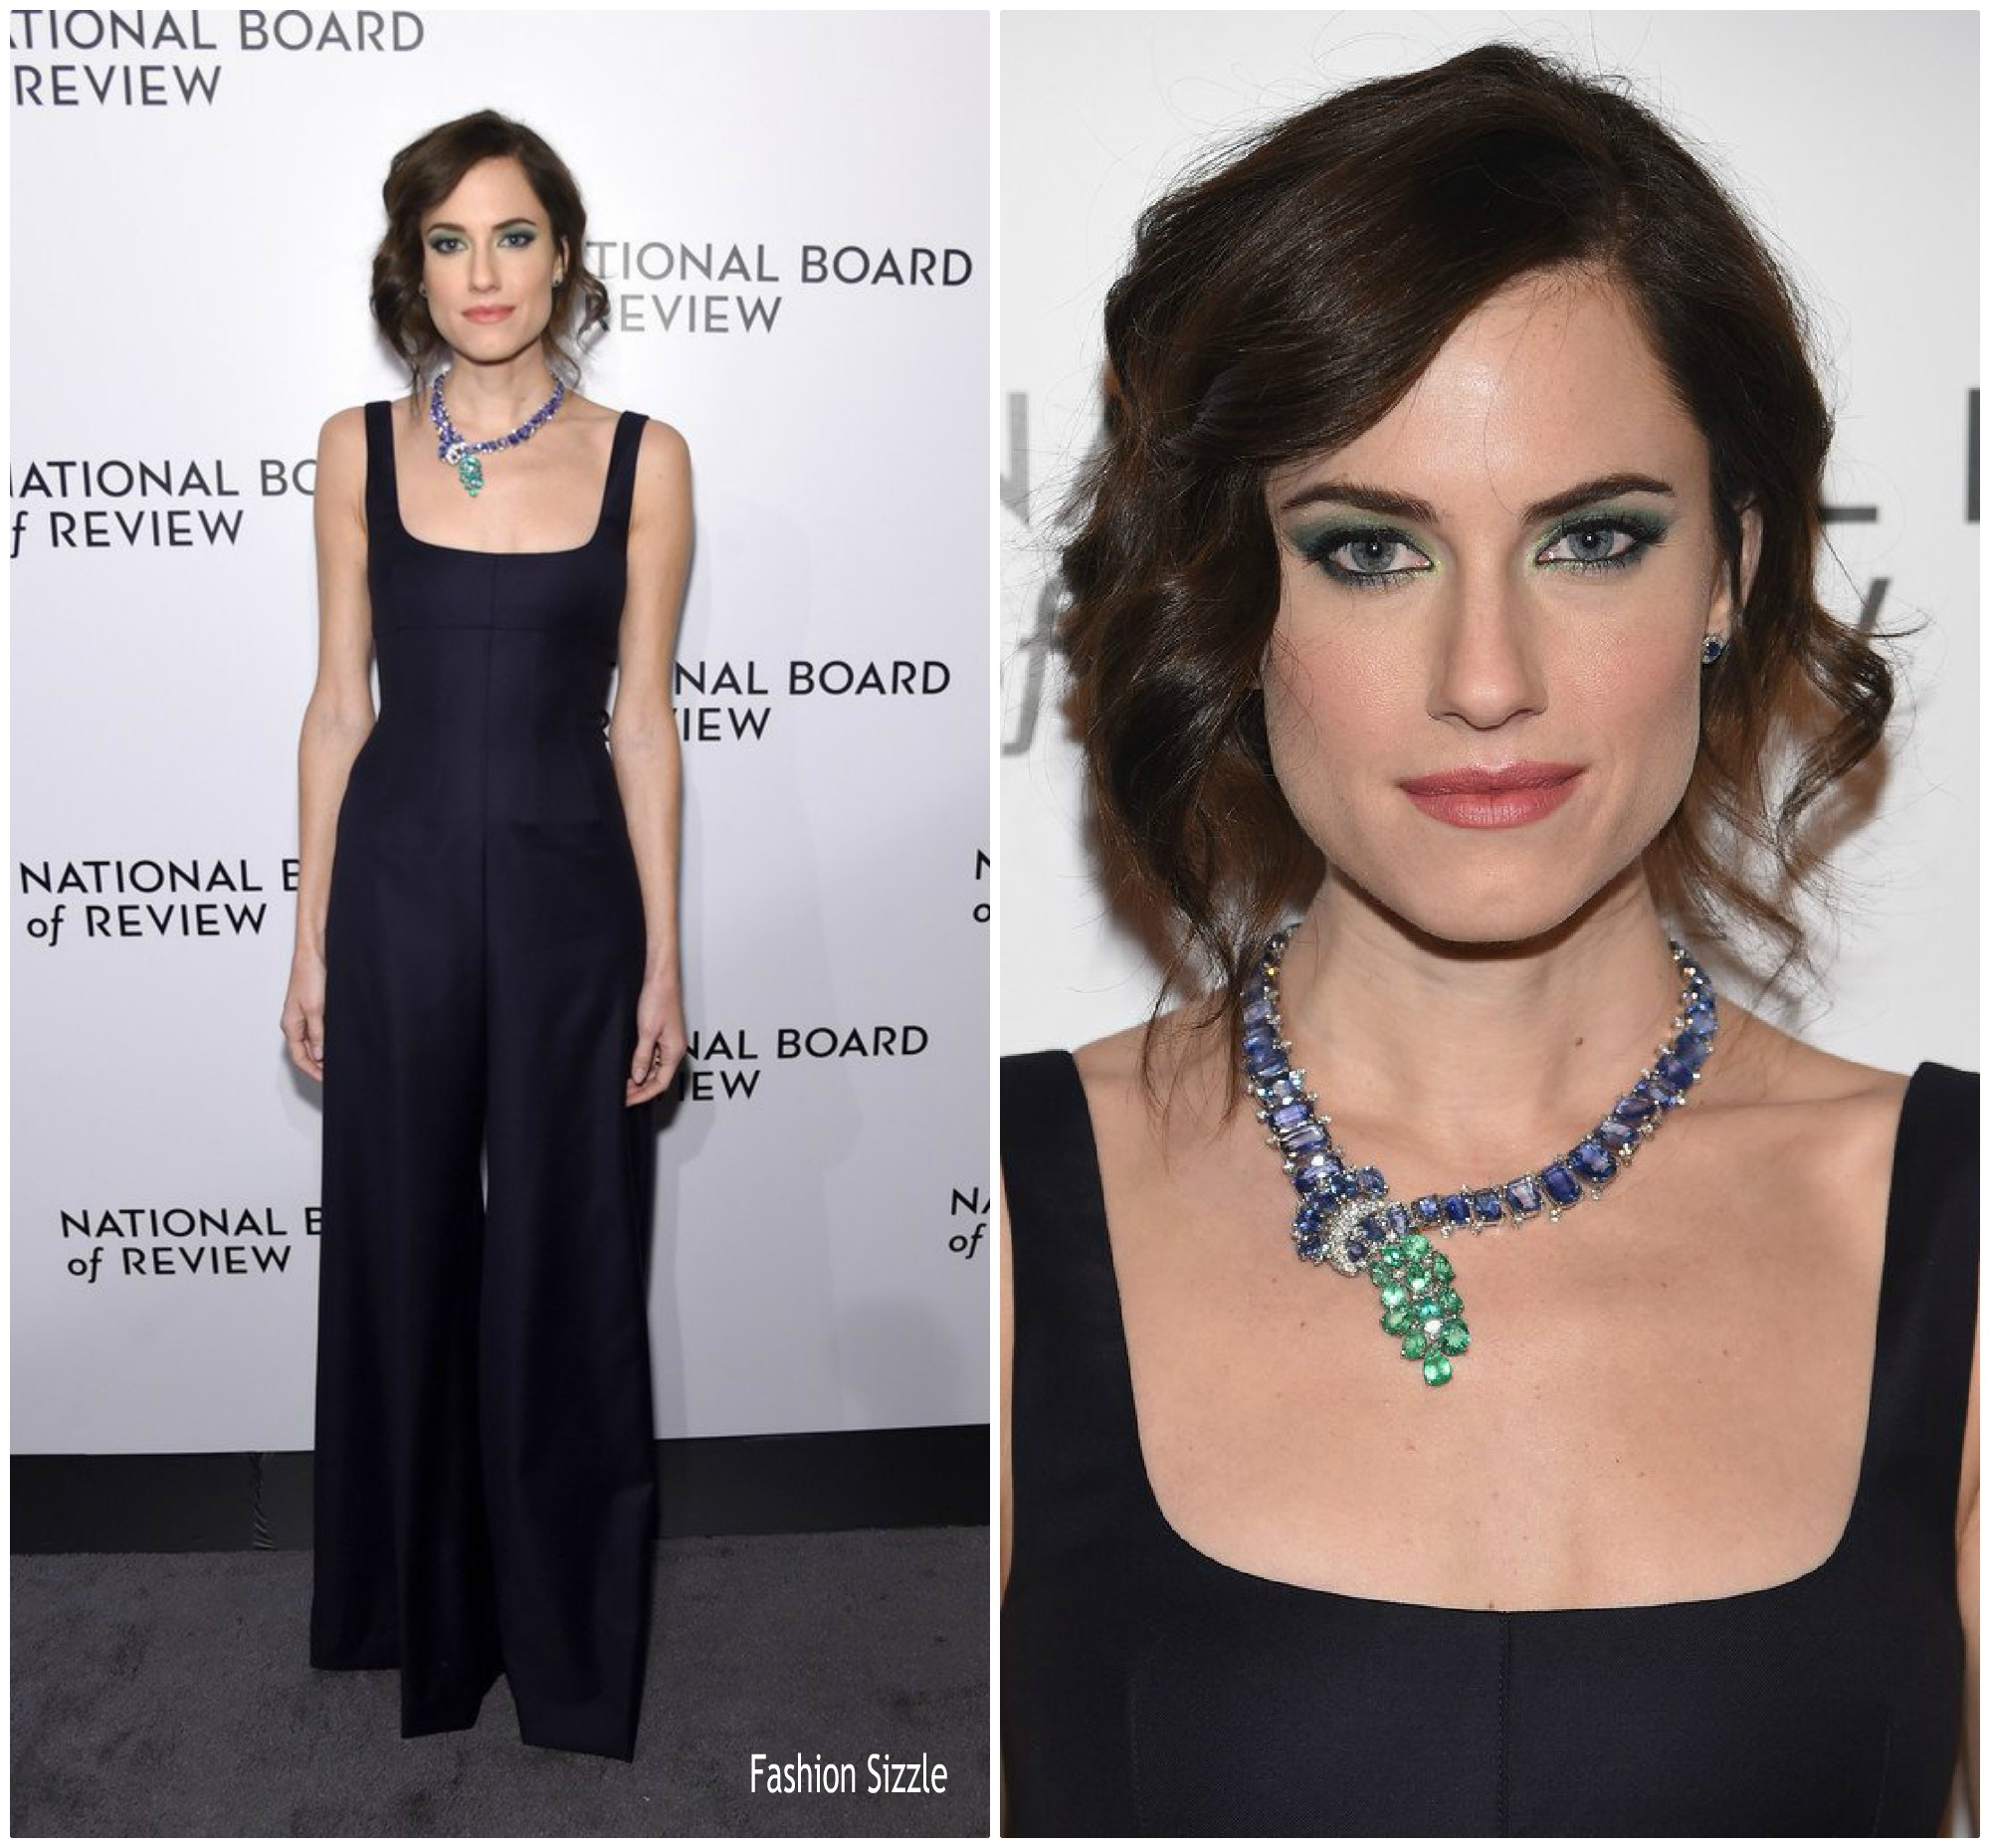 allison-williams-in-cushnie-et-ochs-2018-national-board-of-review-awards-gala